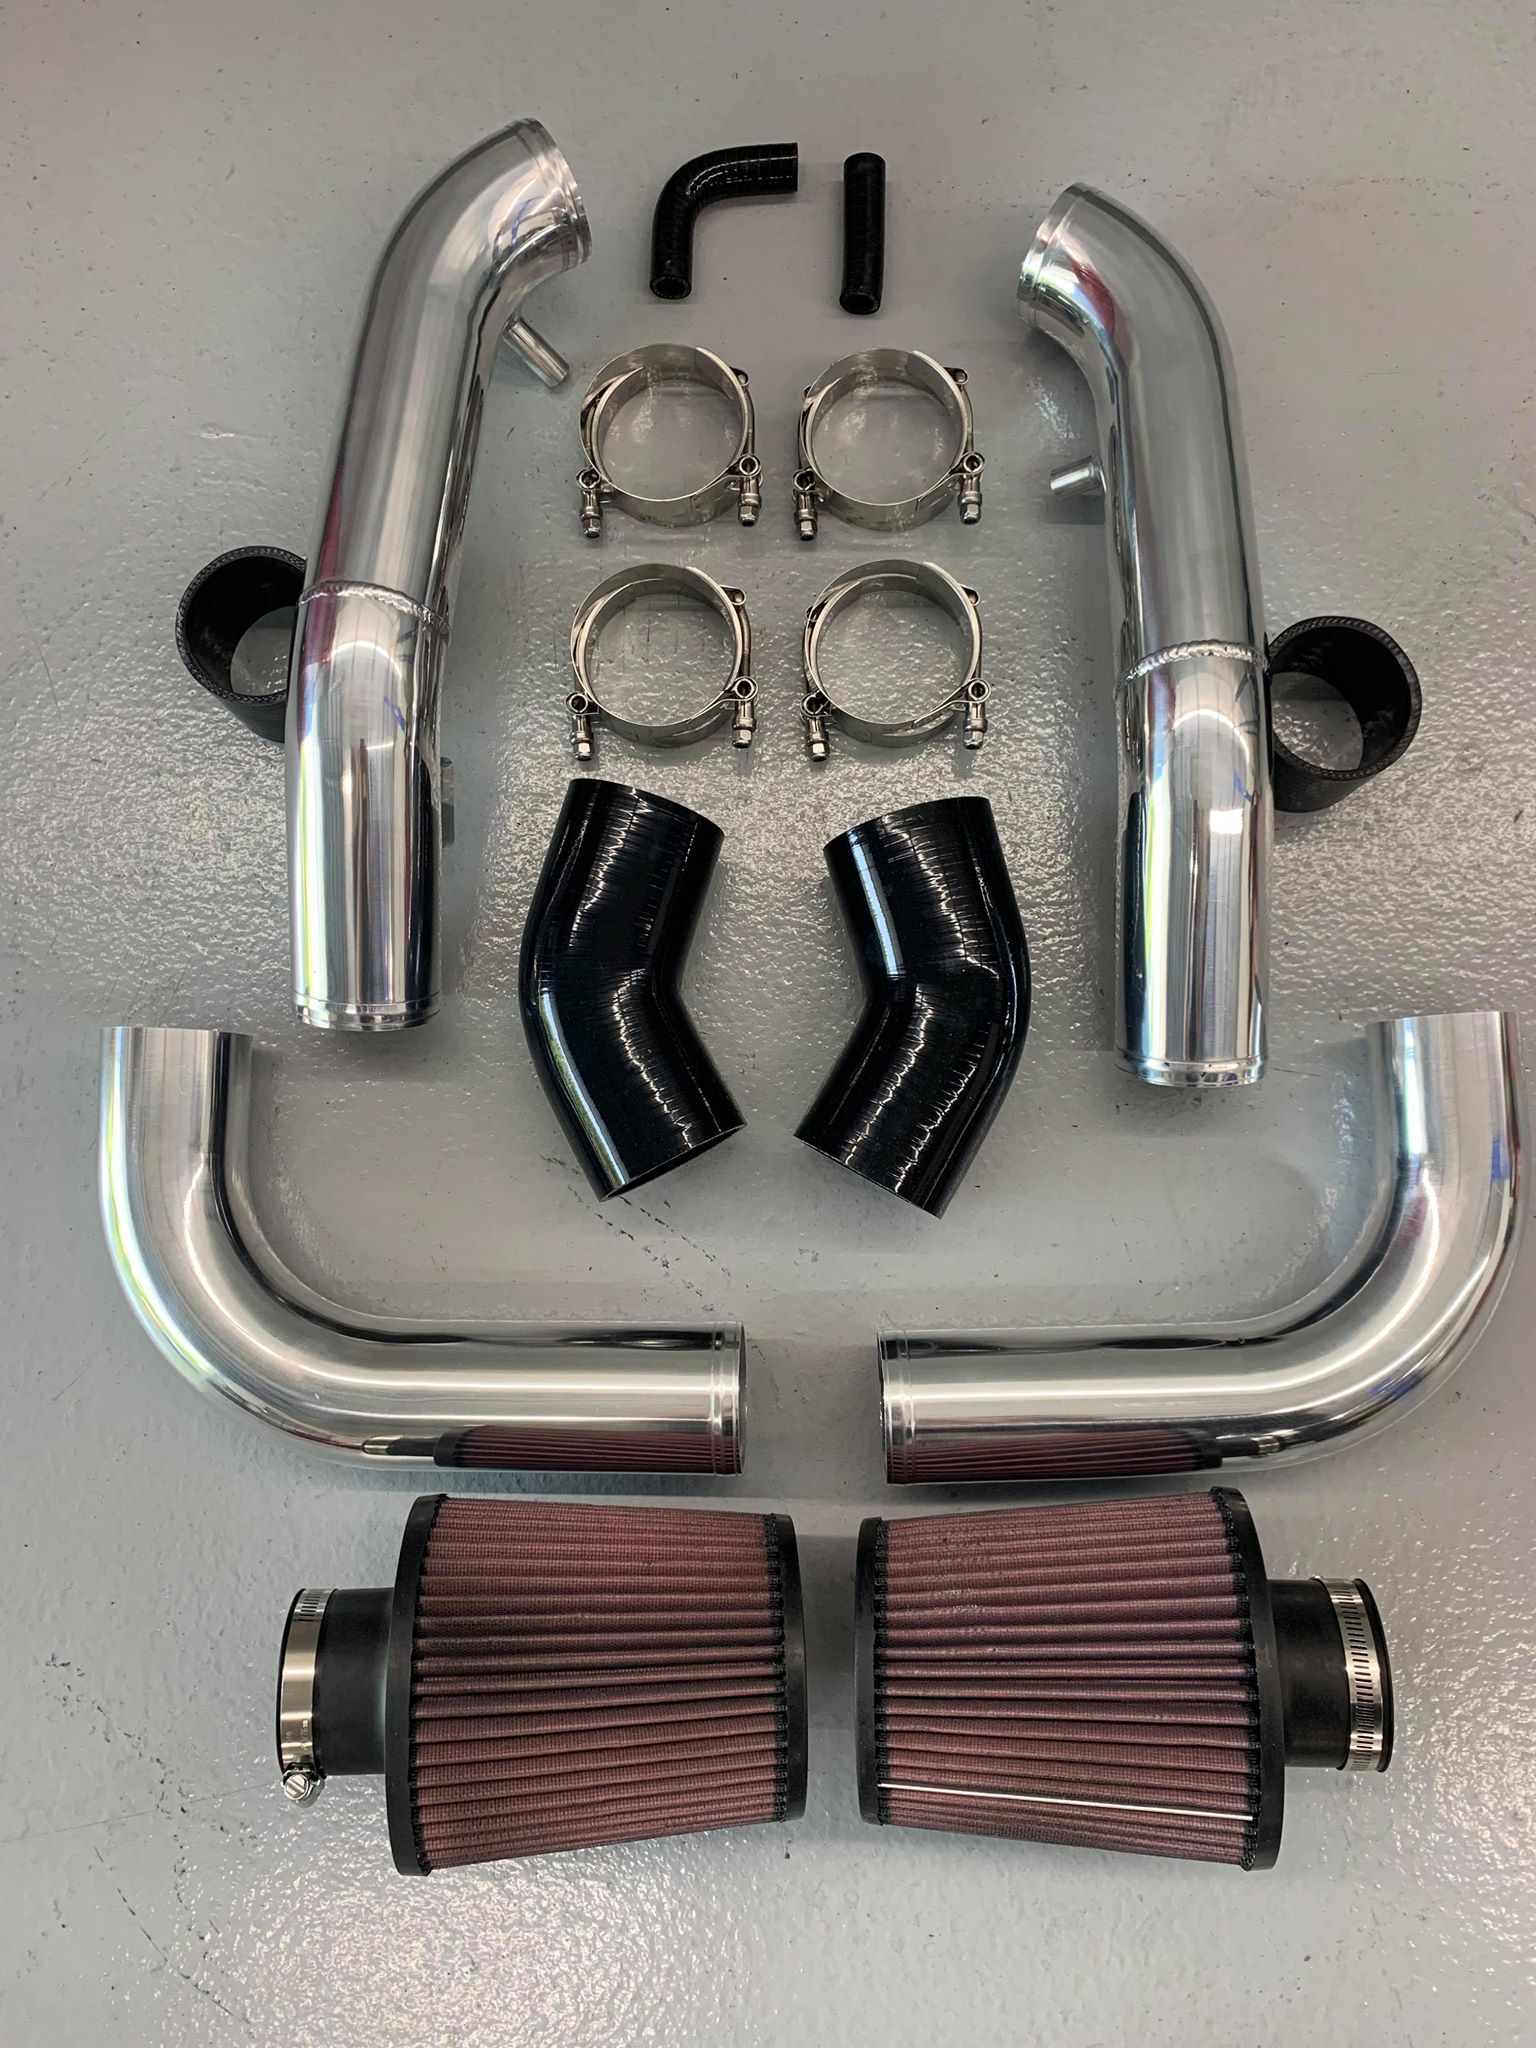 SOHO Motorsports 370Z / G37 Cold Air Intake Kit (69 mm) - SOHO Motorsports